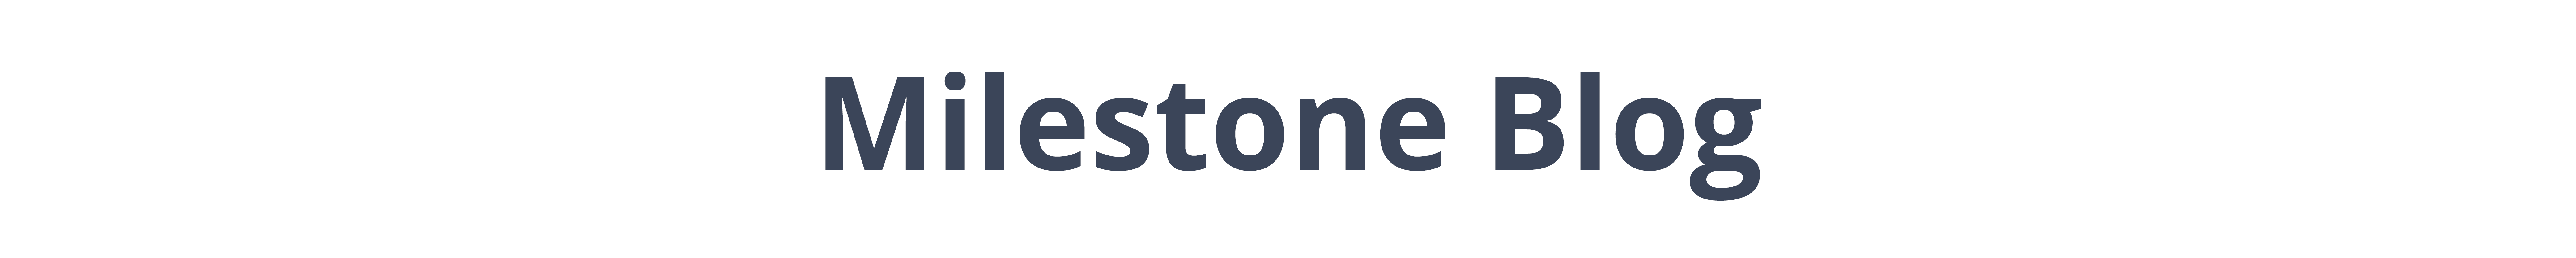 Milestone magazine logo at Heatherwood Senior Living